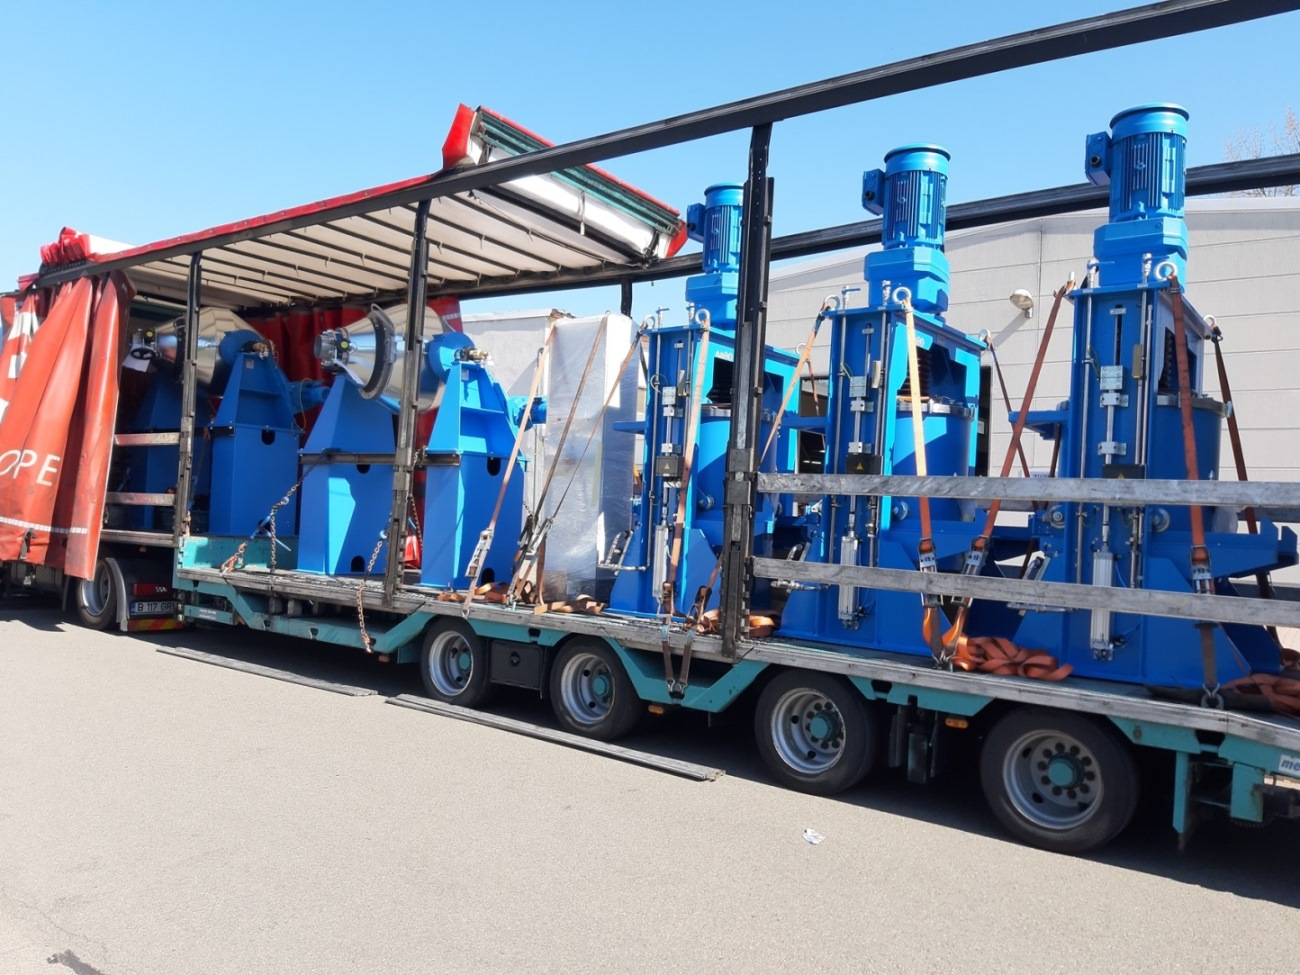 Attritor and Double-cone vacuum dryer loaded on truck